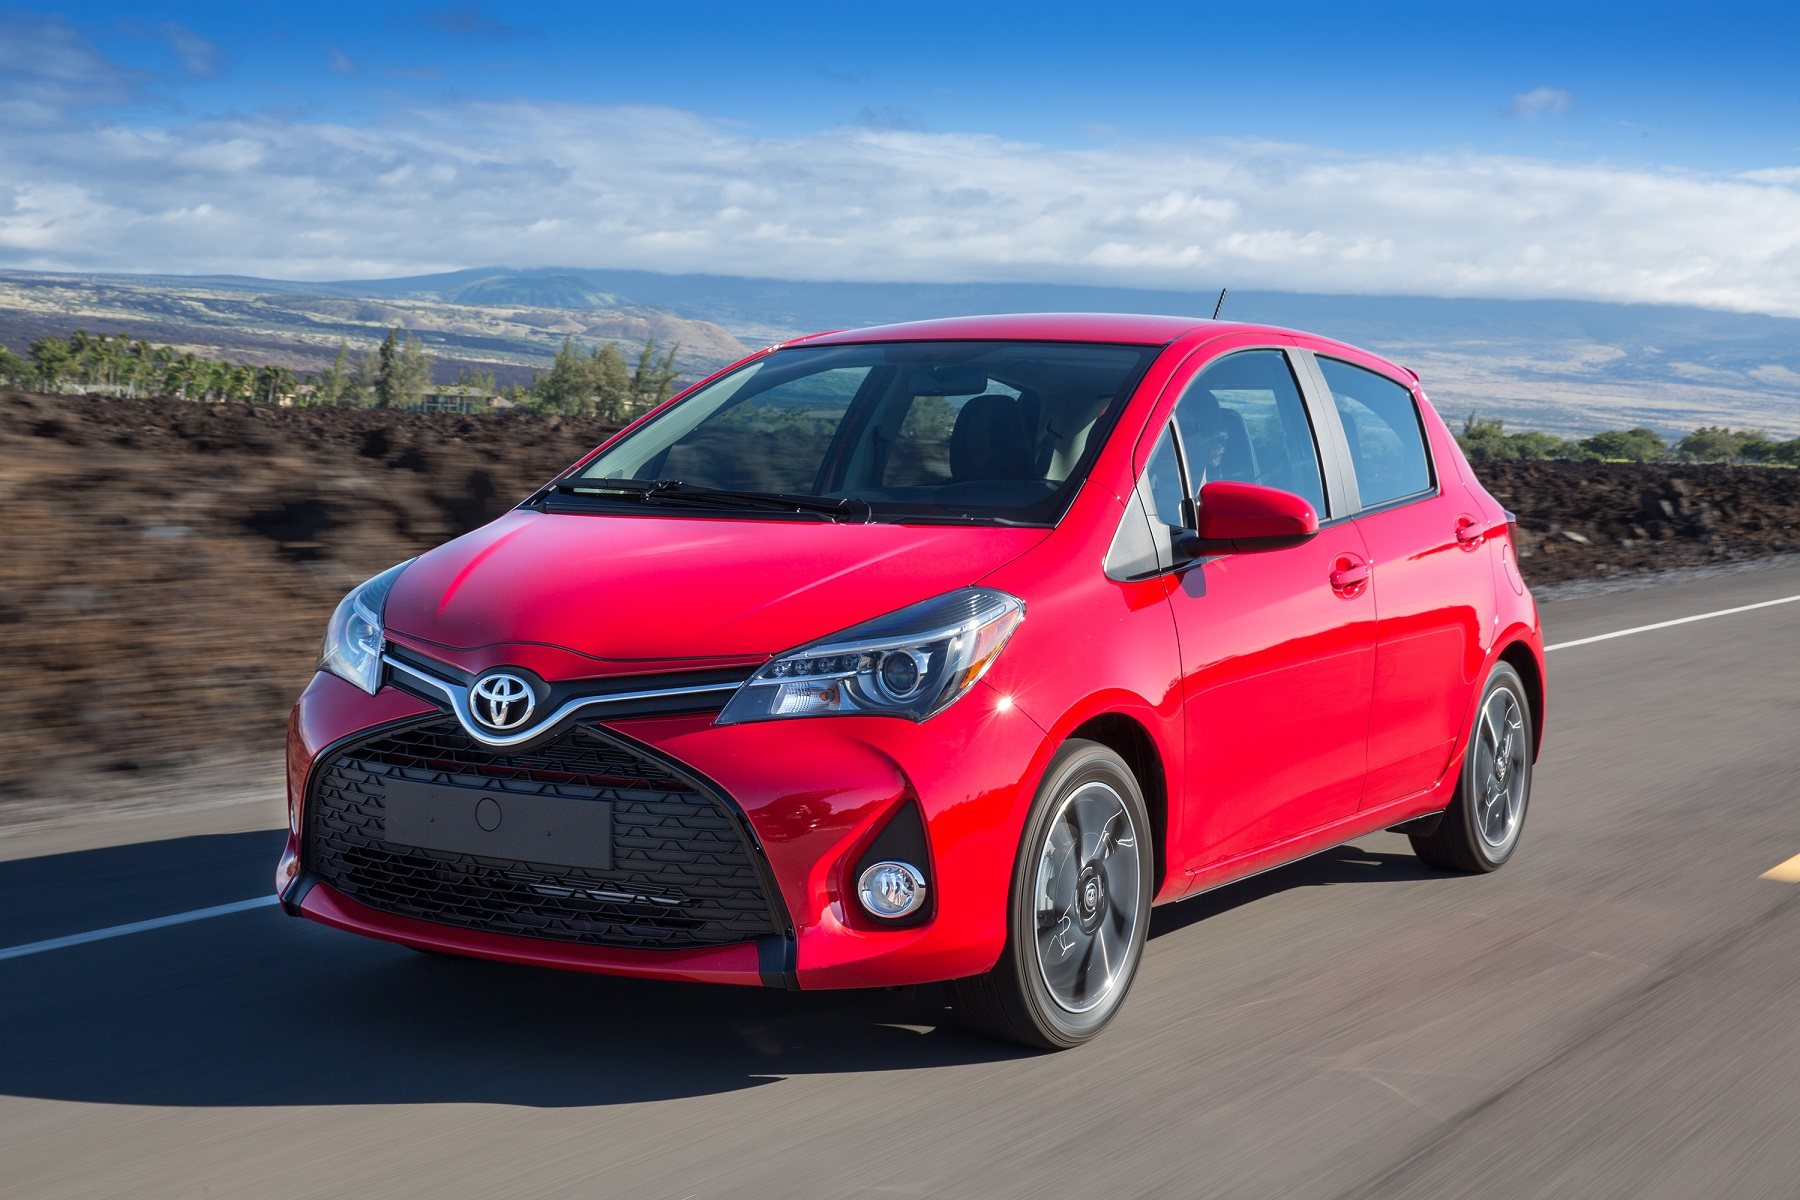 Manufacturer Photo The New Yaris Combines An Energetic Shape With A More Comfortable Cabin